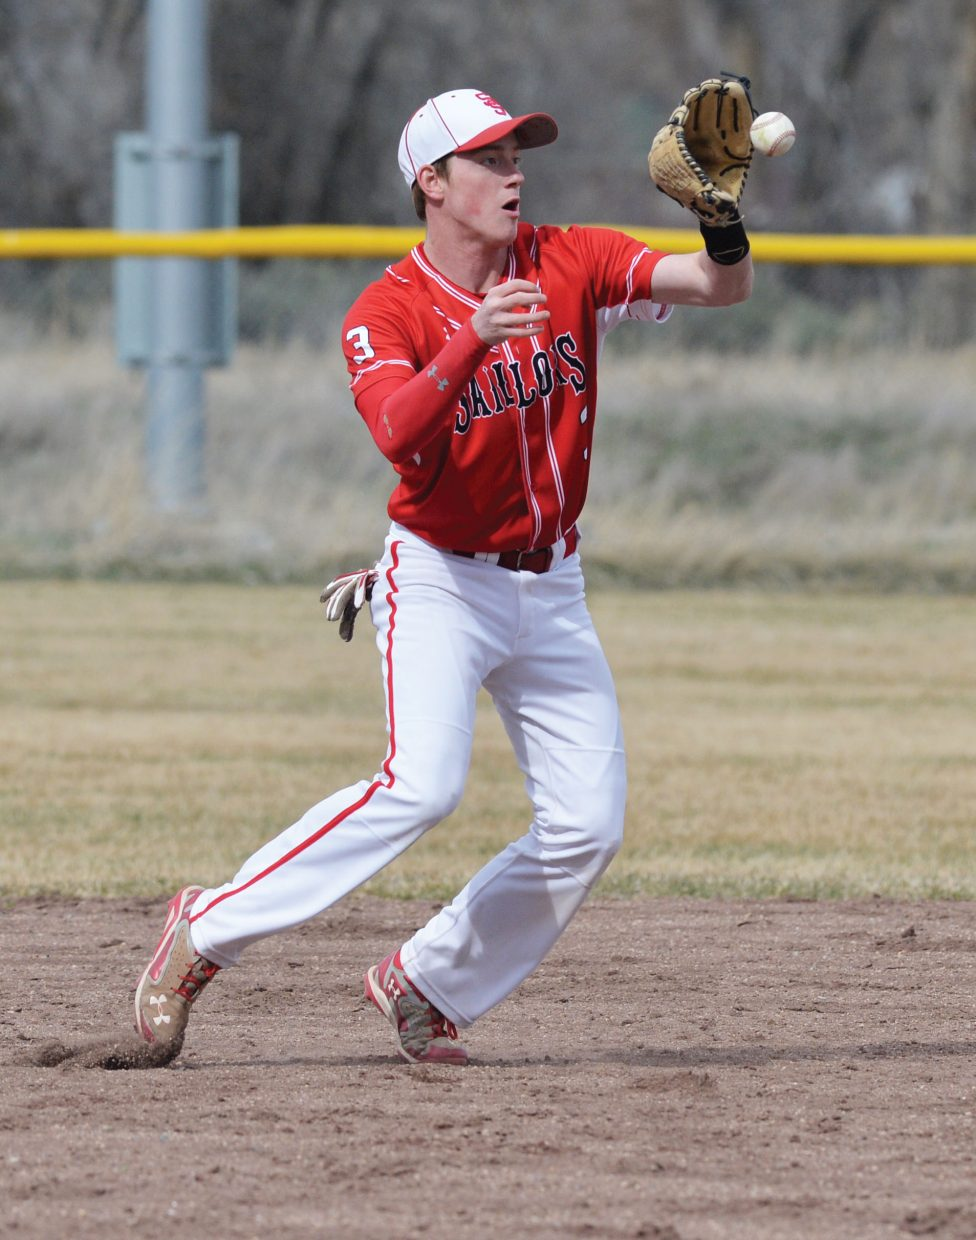 Steamboat Springs shortstop Charles Fitzhugh snags a grounder in the first half of a doubleheader against Summit County Tuesday afternoon in Craig. Steamboat held off a late-inning rally by the Tigers to win the first game 8-7.